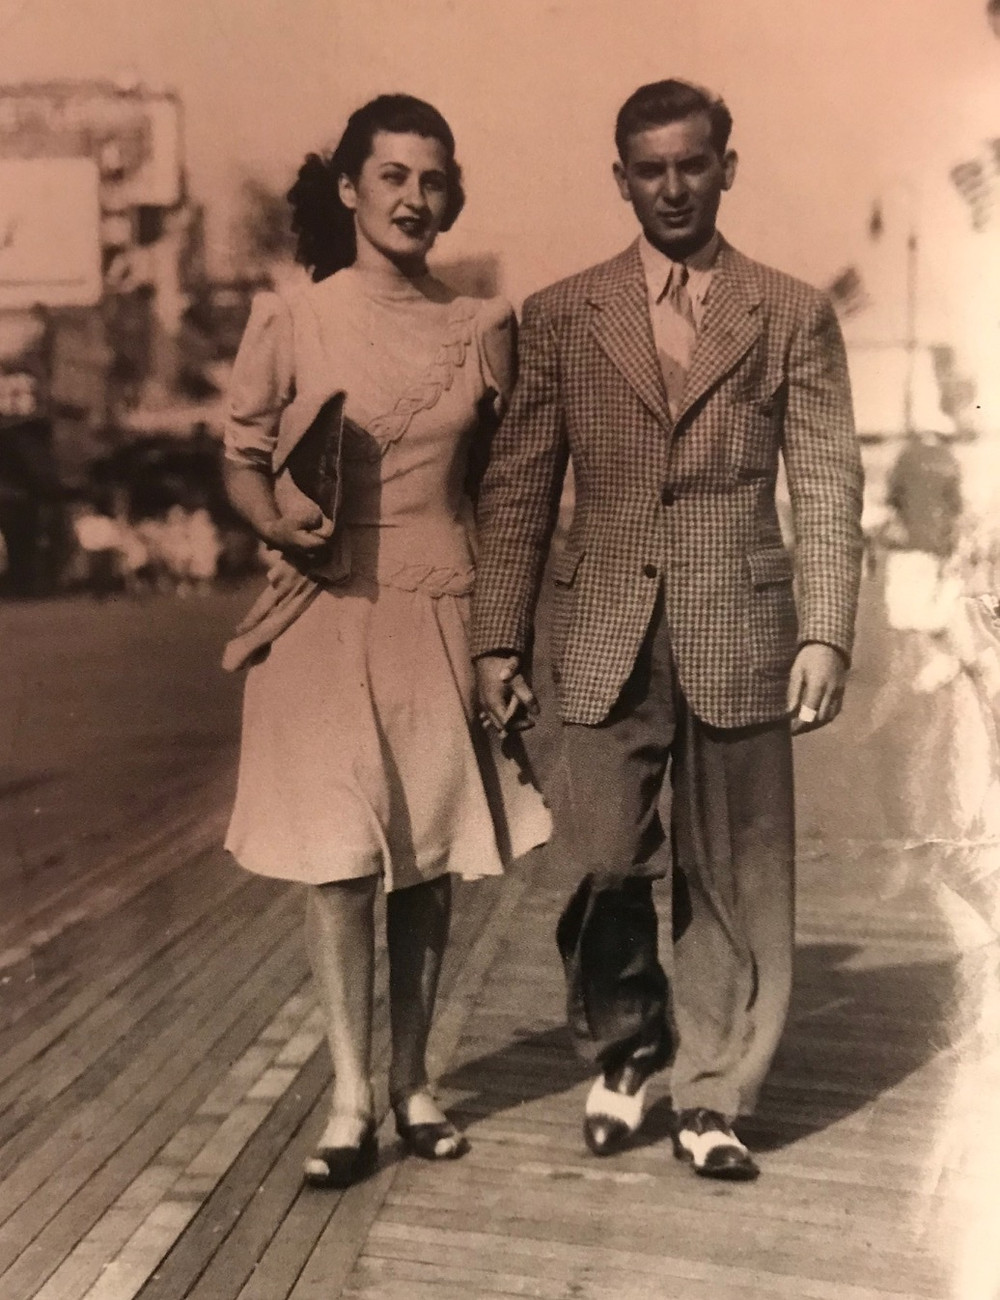 Aunt Norma and Uncle Jimmy walking the boards